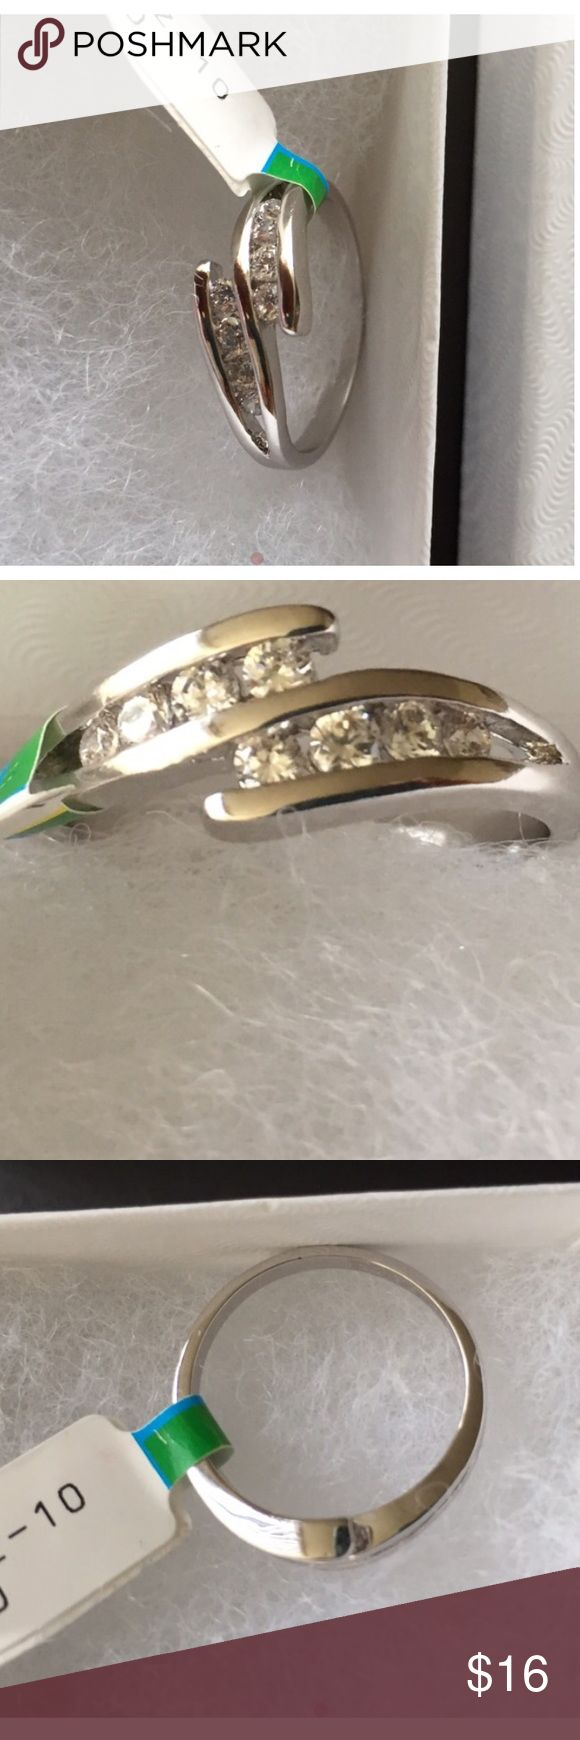 ✨NEW✨ Silver Ring BRAND NEW!  Women's Silver Ring with 8 stone CZ.  Size 10.  Fashion Jewelry. Jewelry Rings